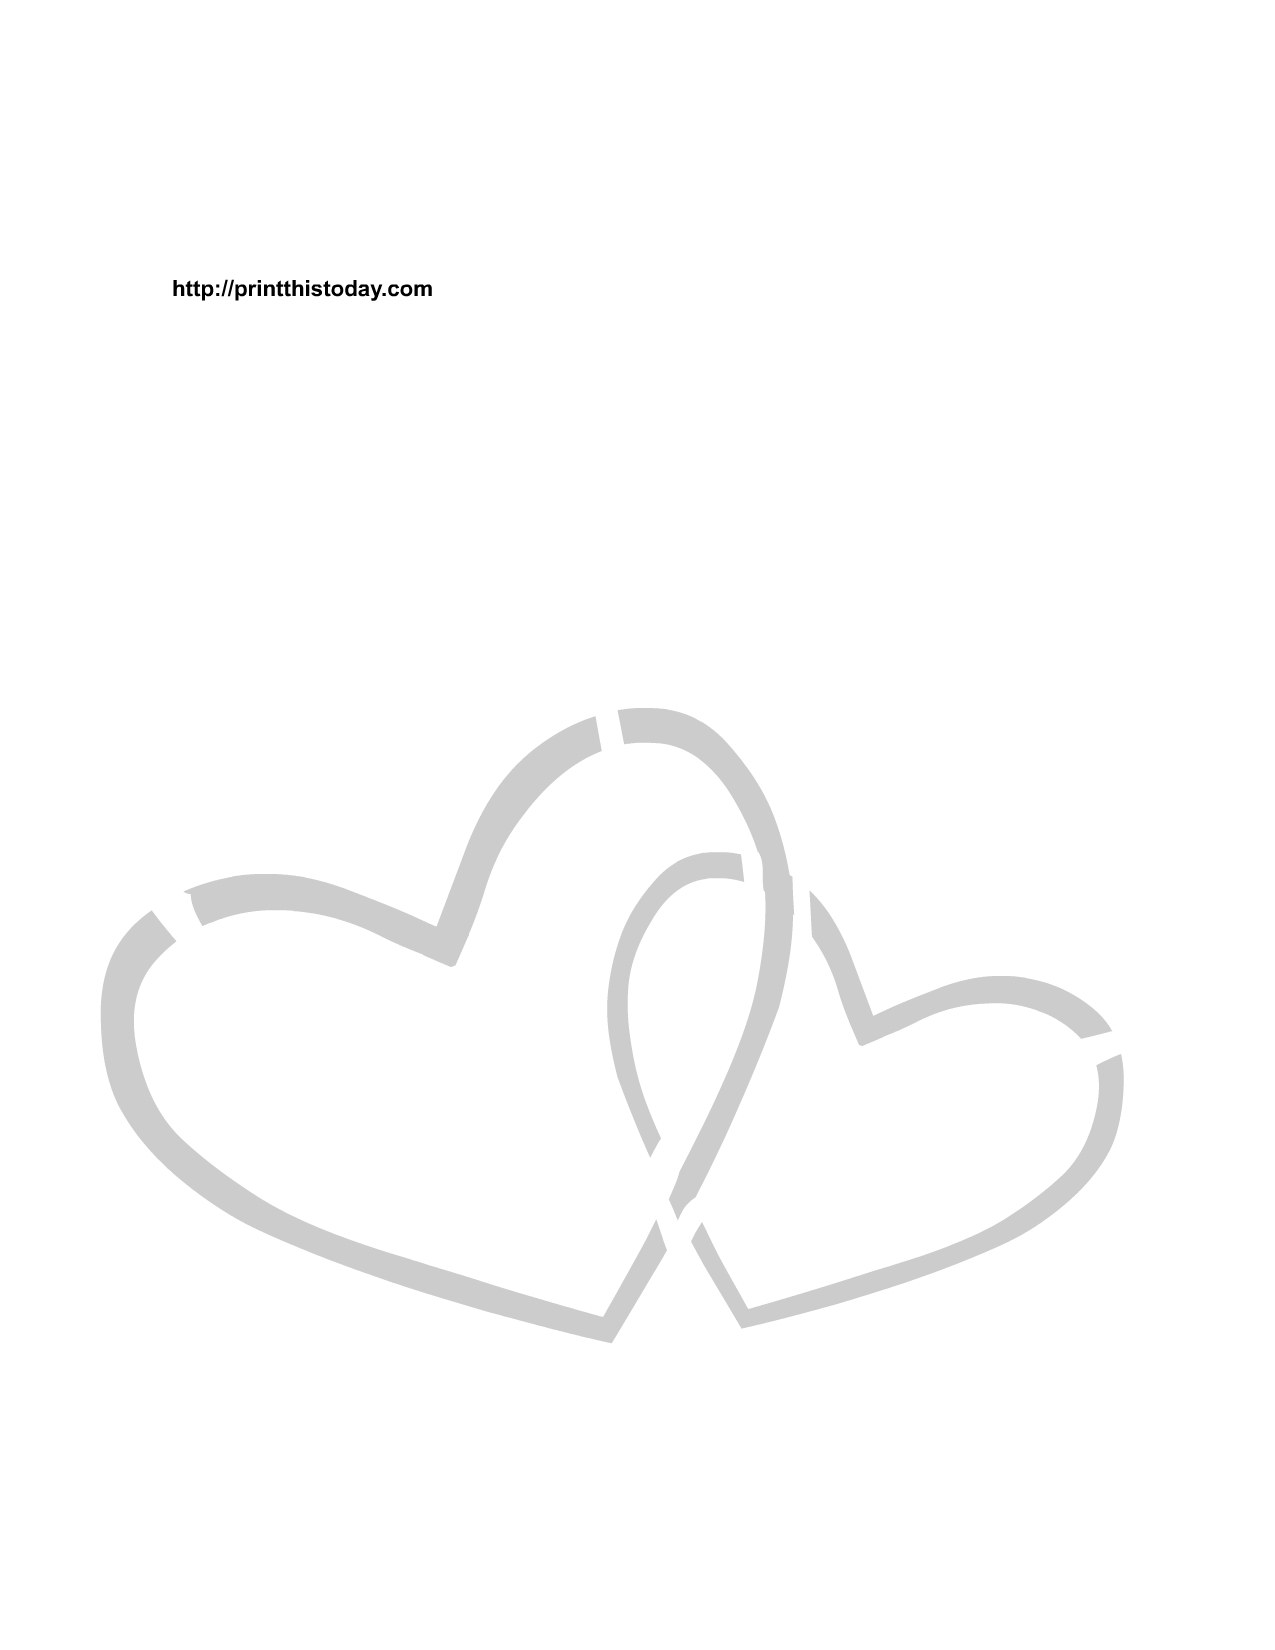 Free Printable Hearts Stencils - Free Printable Hearts